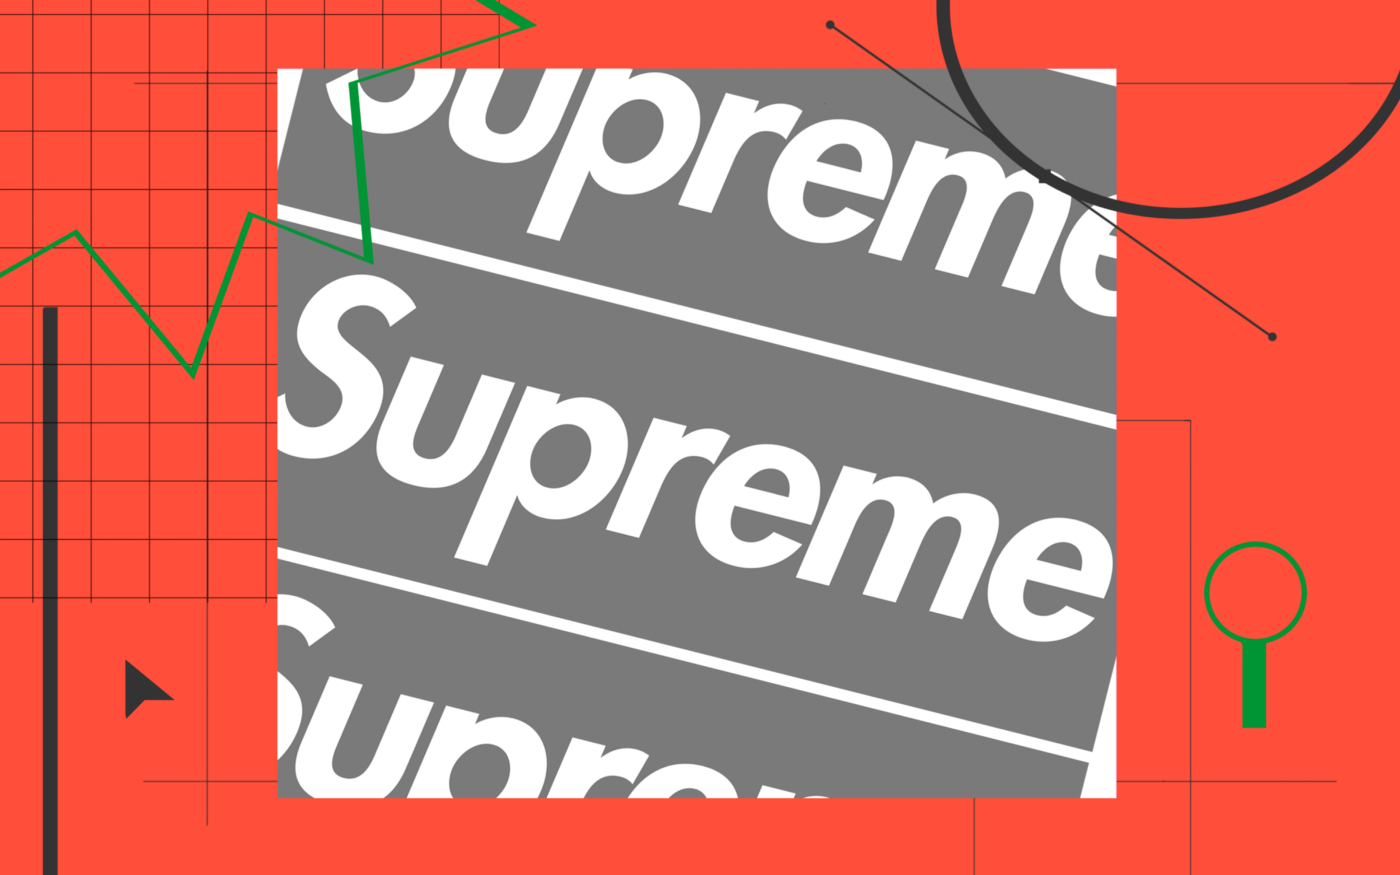 The Supreme logo replicated several times over a red background with various templated graphs and lines.